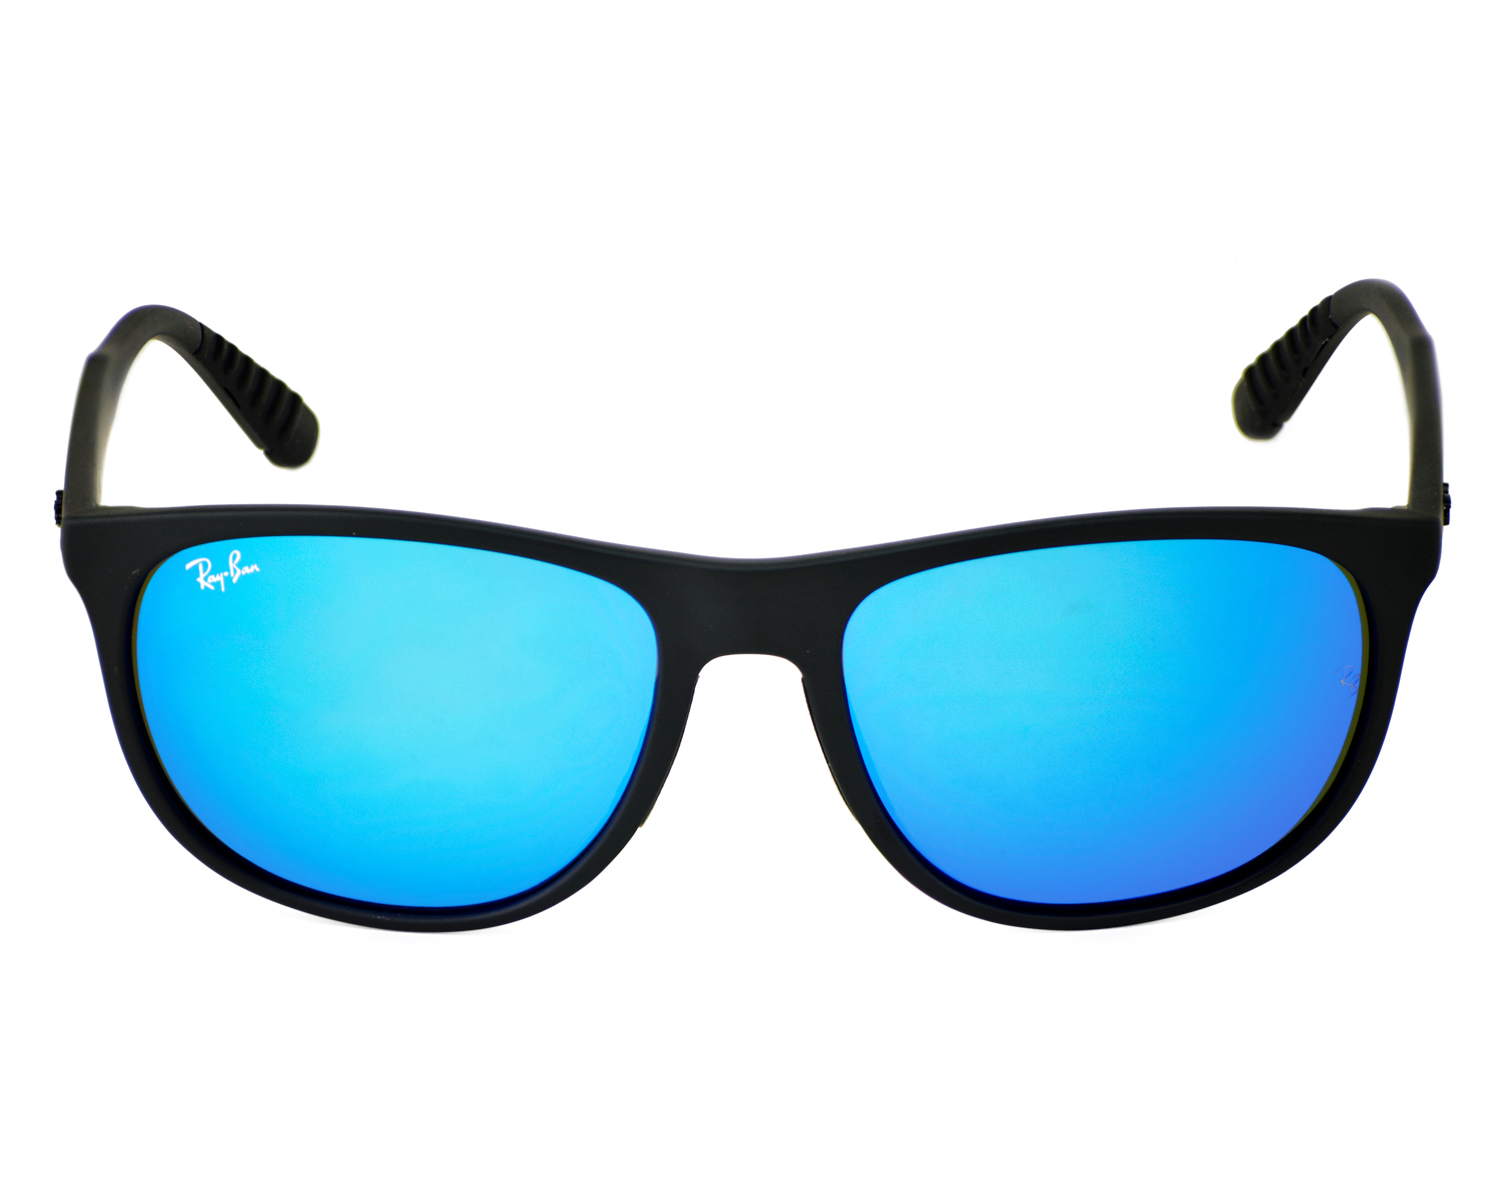 8de24a3e5a Ray-Ban RB4291 601S 55 Black Frame Blue Mirror Lenses Unisex Sunglasses 58mm